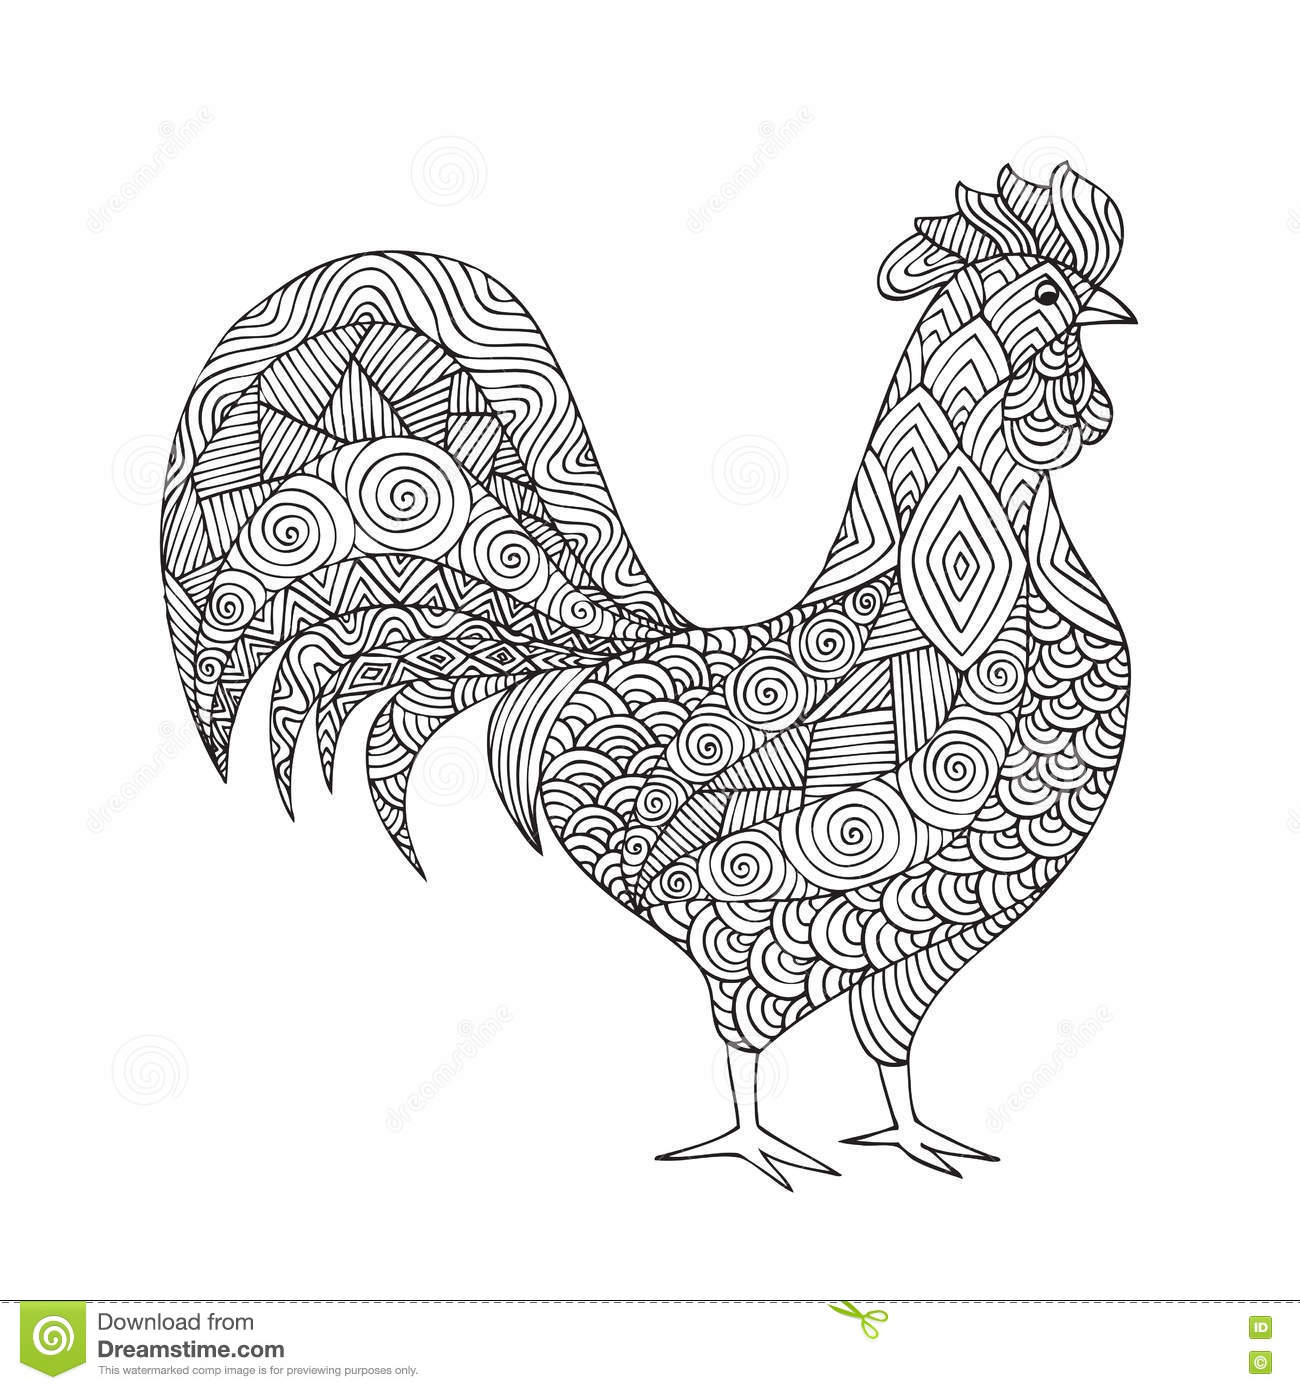 Free coloring pages rooster - Adult Coloring Book Page Design Royalty Free Stock Image